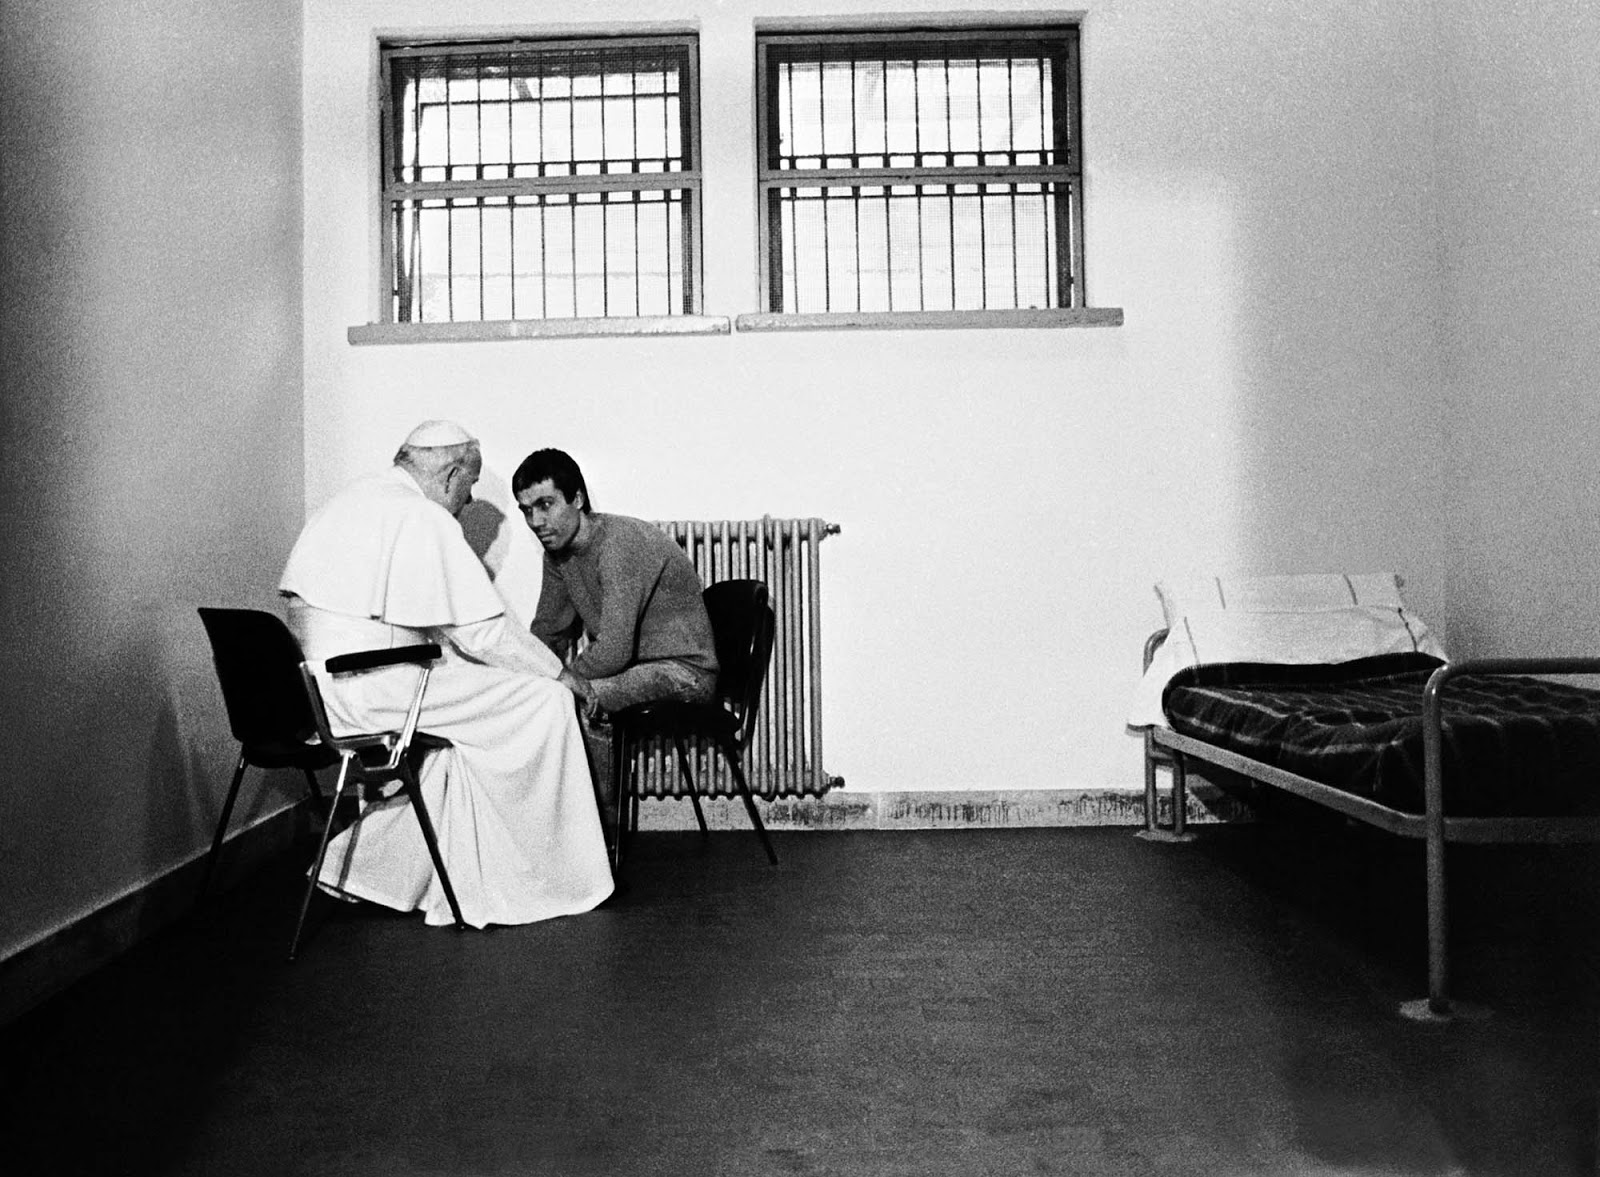 Pope John Paul II visits his would-be assassin Mehmet Ali Ağca in prison.